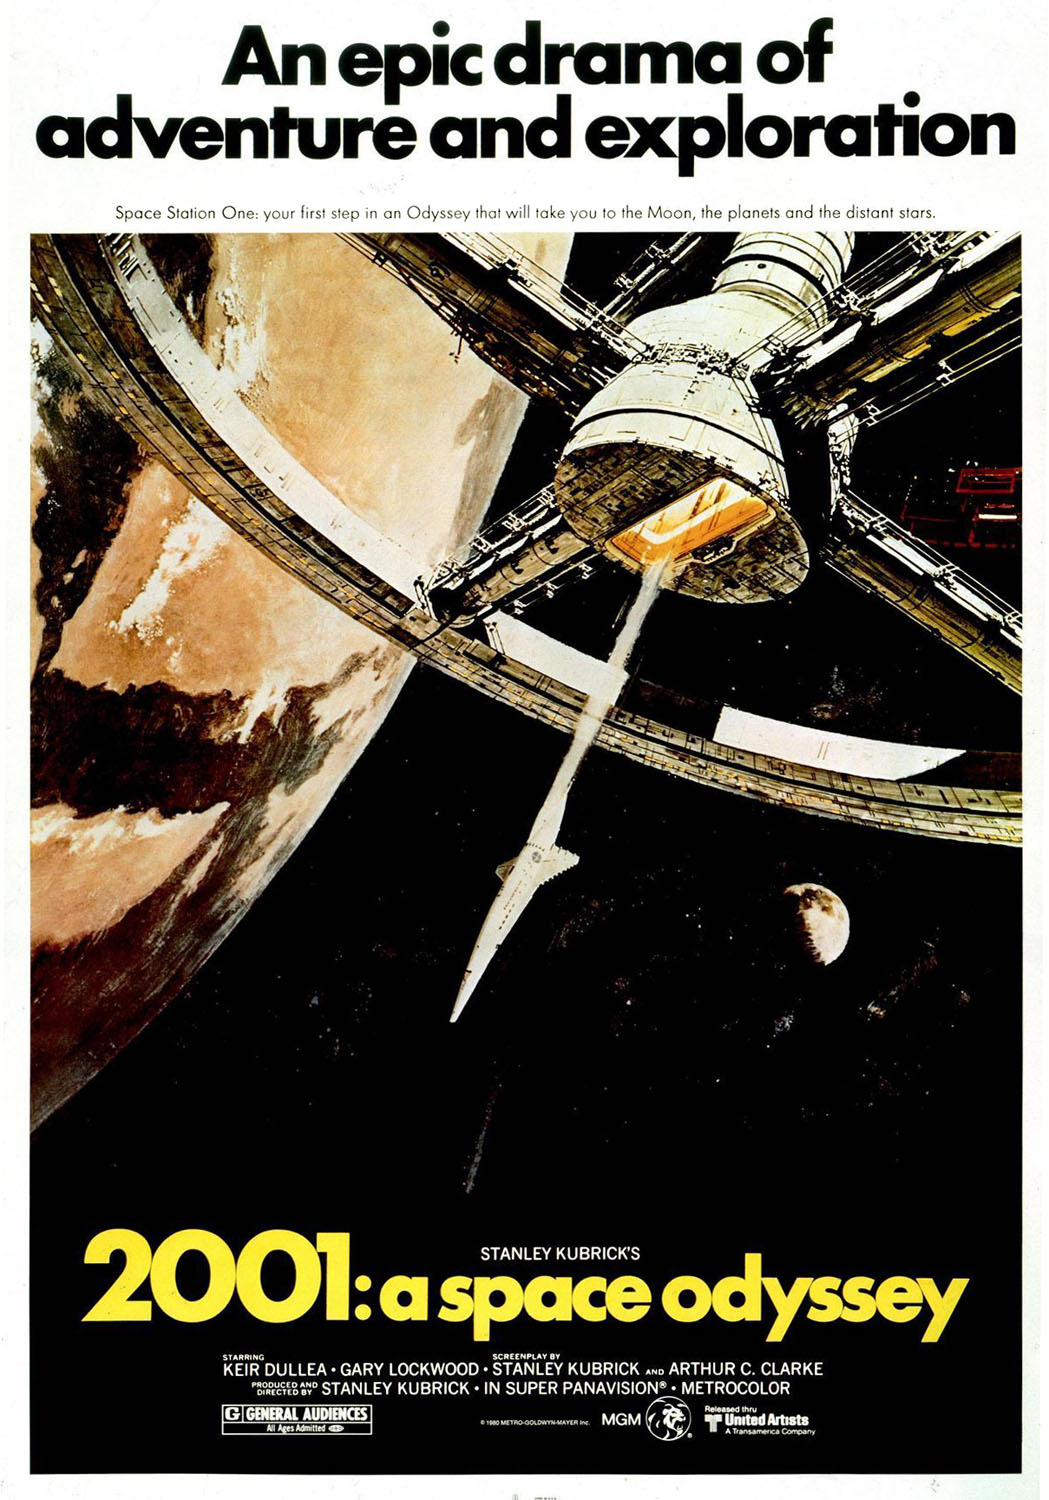 2001: a space odyssey (1968) international posters